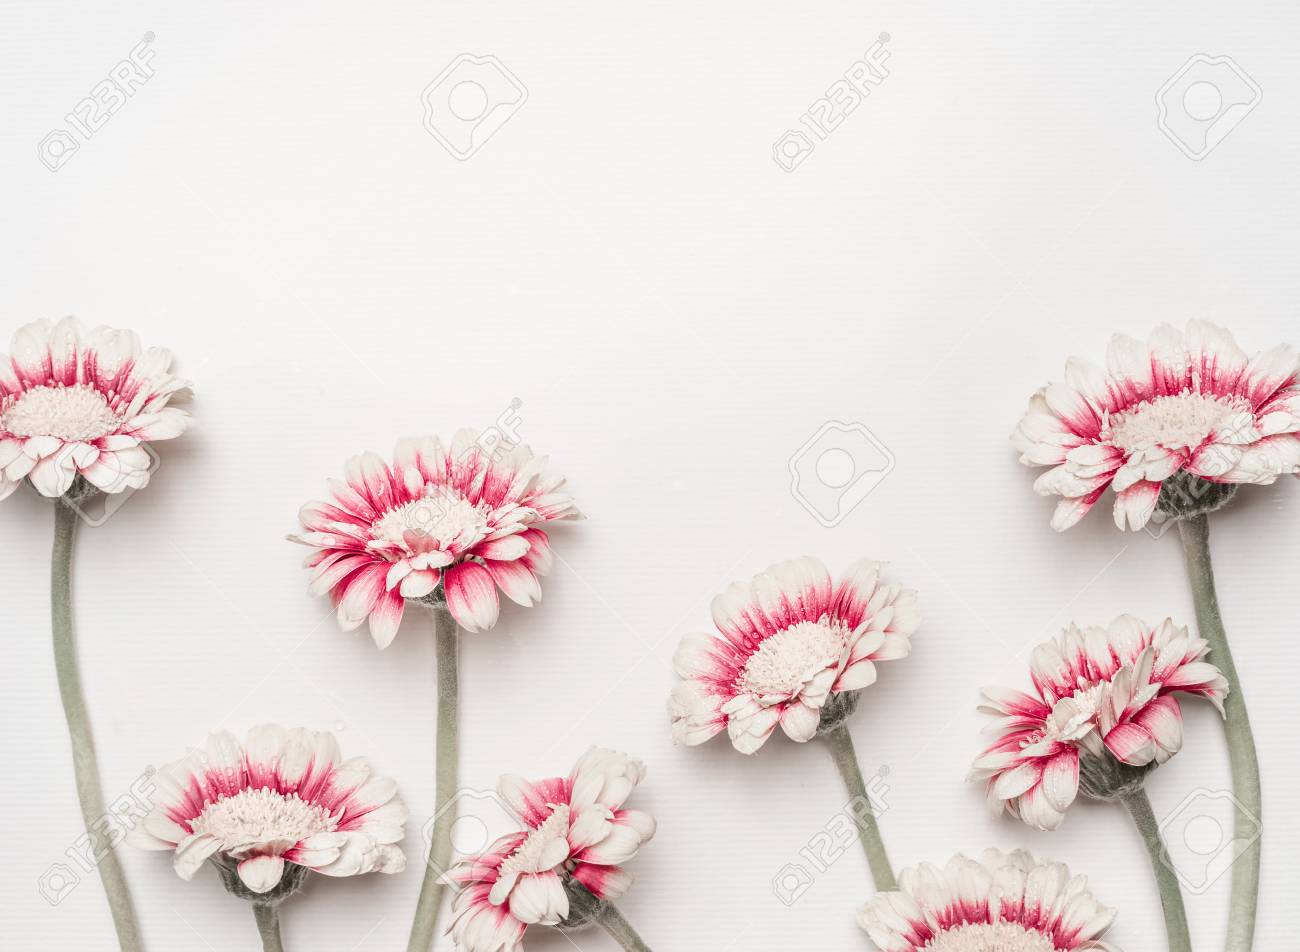 Lovely Daisies Flowers On White Desktop Background Floral Border